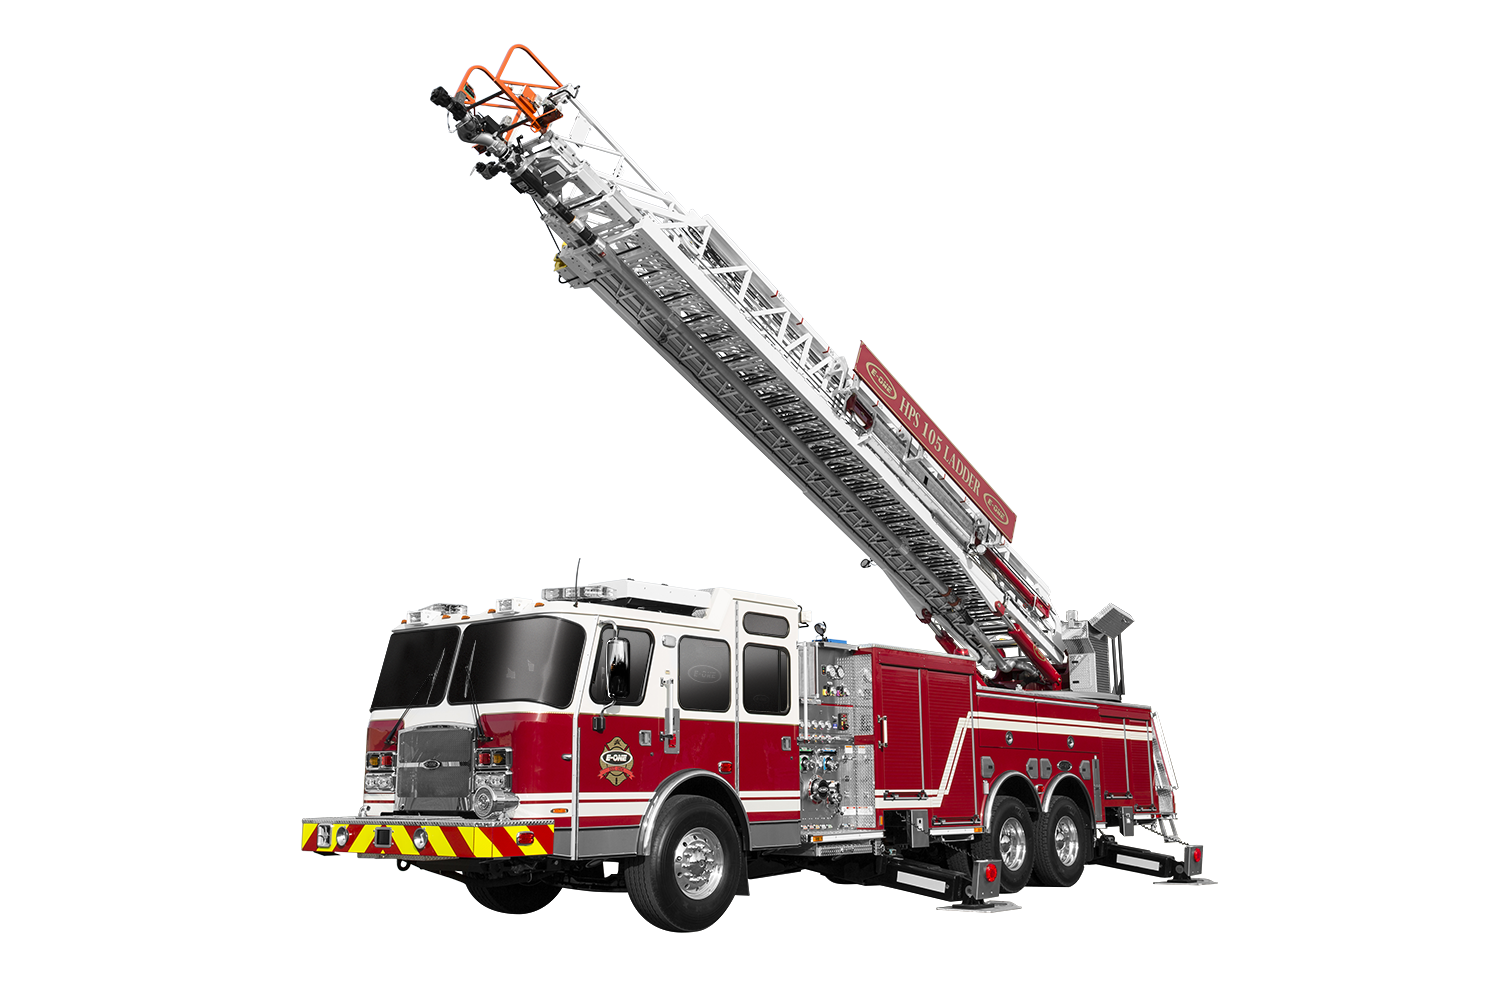 Fire ladder png. Firefighting trigon aerial ladders